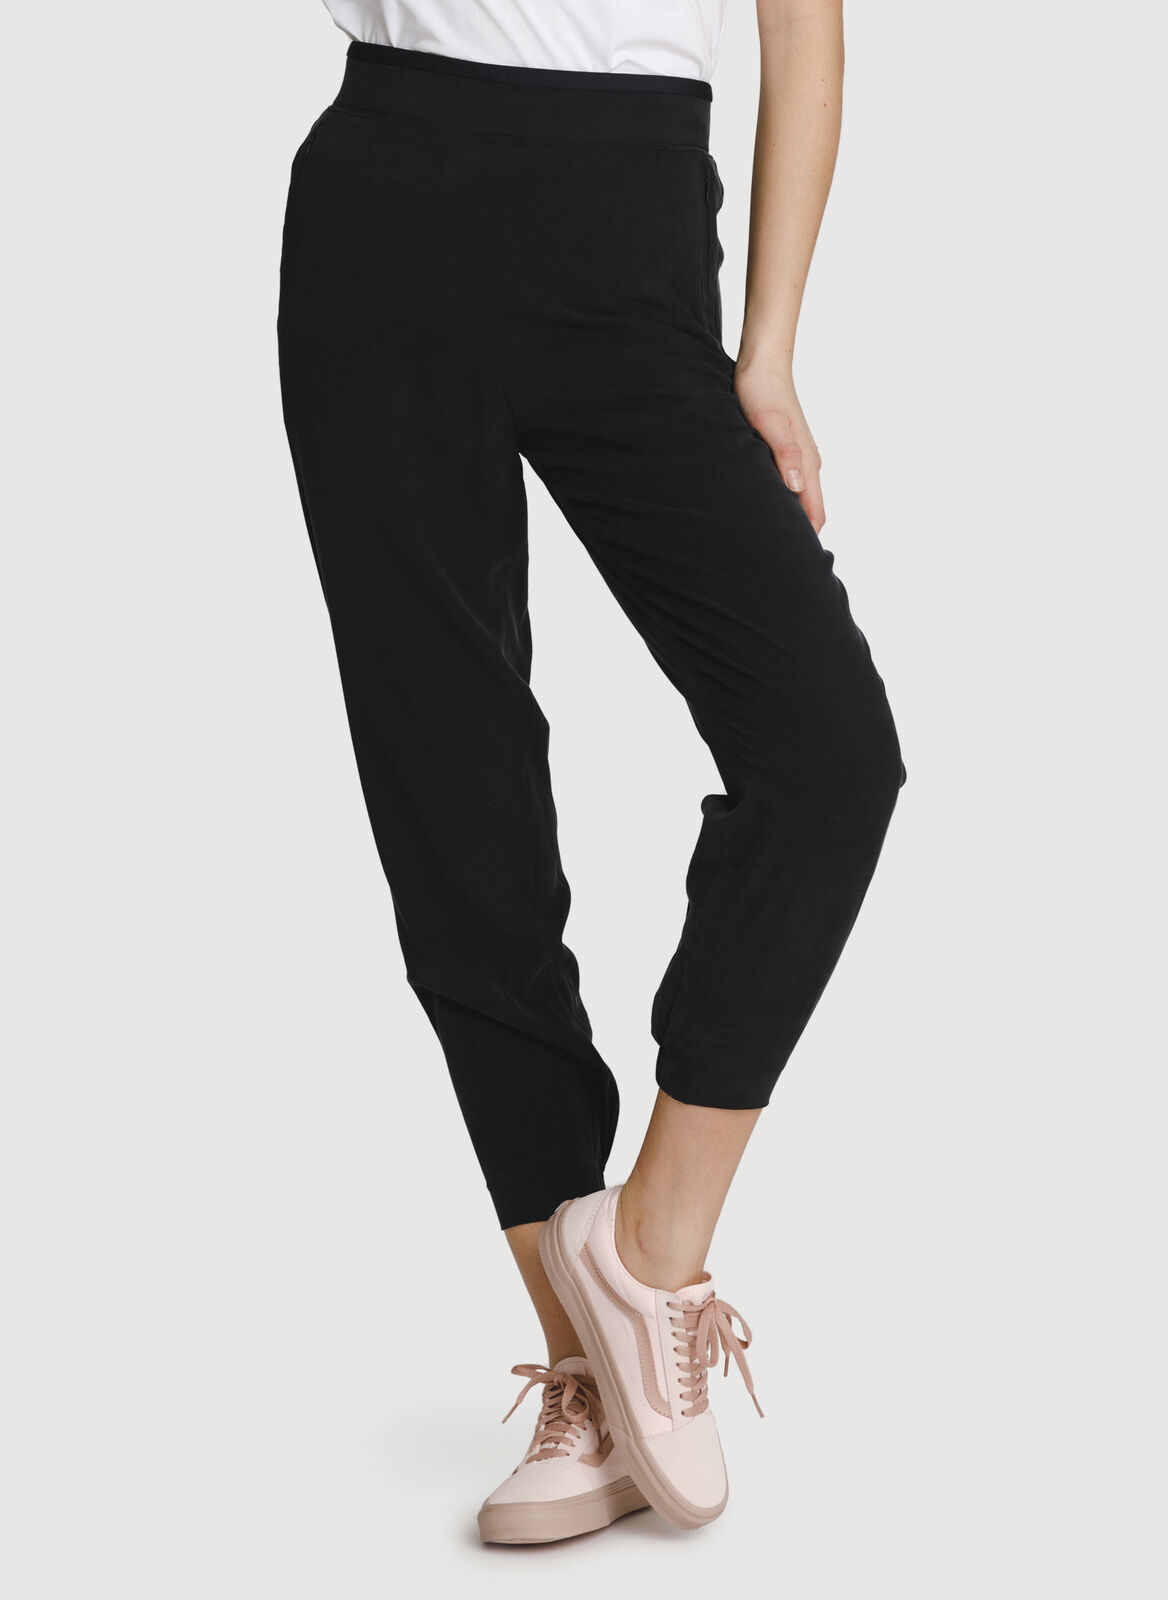 263daa16c4 Easy Breezy Stretch Jogger | Women's Pants and Shorts | Kit and Ace